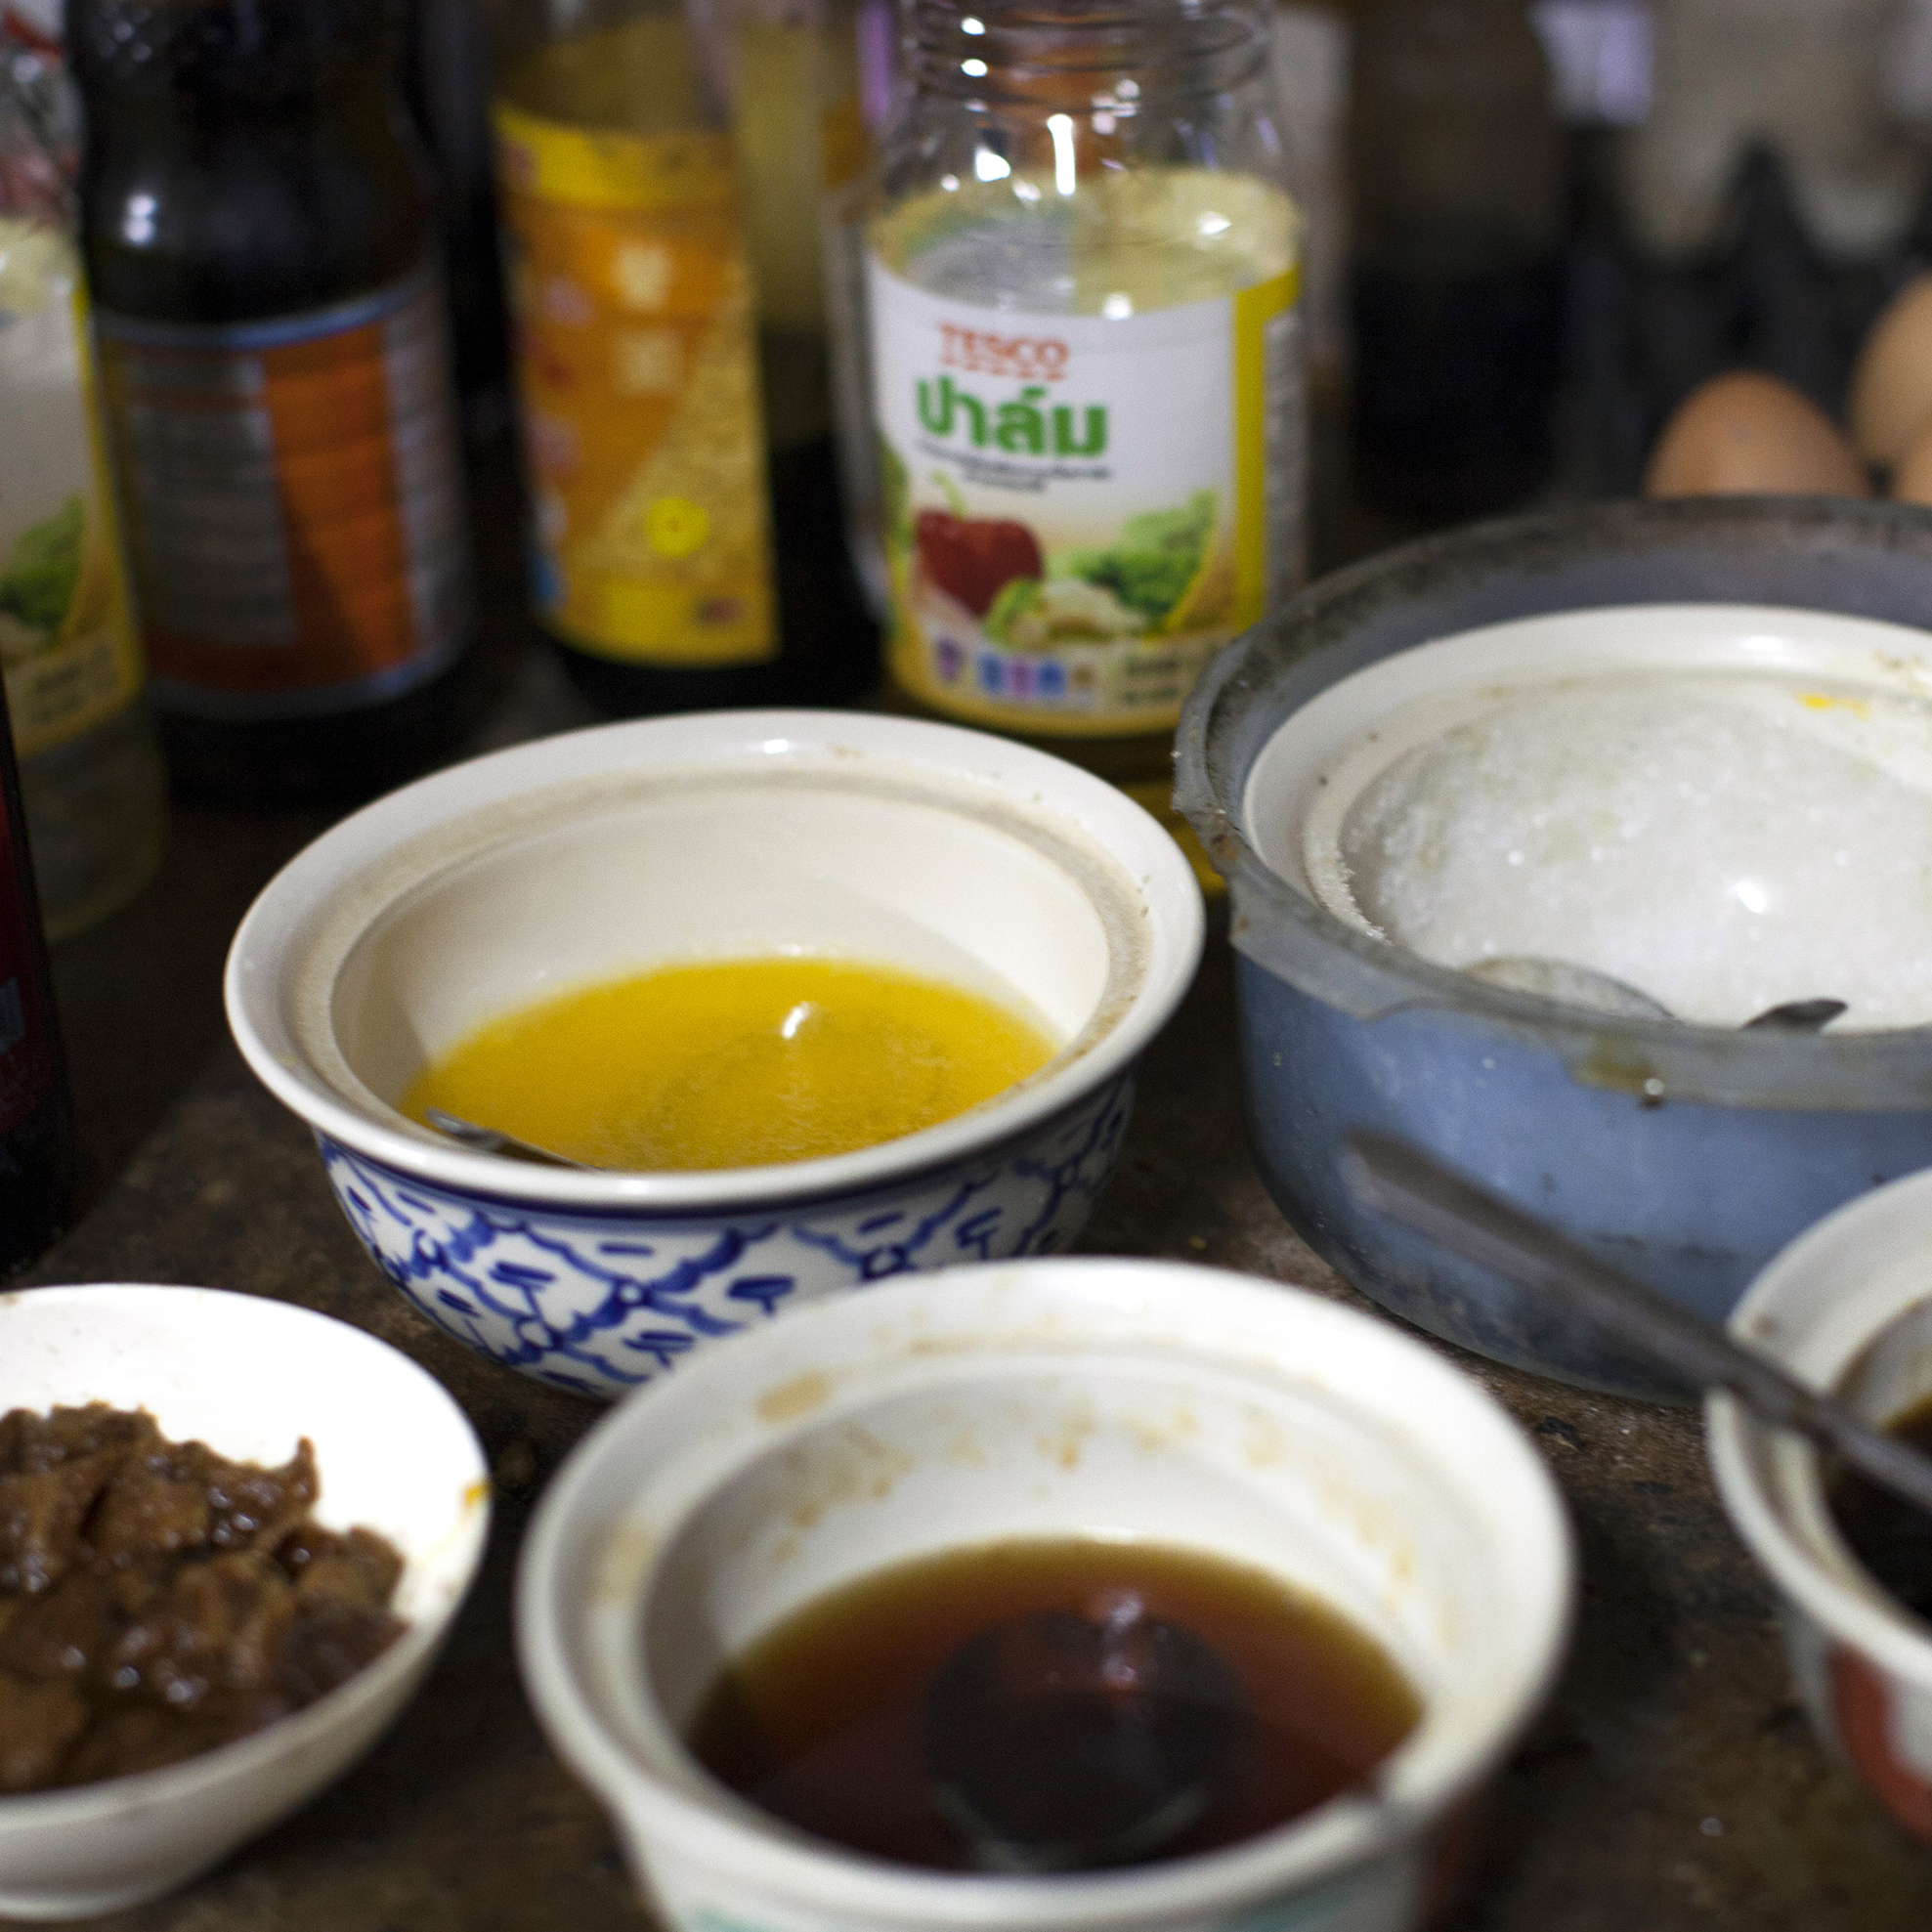 To prepare Aiya's Burmese and Thai dishes, the kitchen staff use a variety of spices and ingredients, including fish sauce, garlic, chili, bean powder, shallots, mushroom sauce, oyster sauce and soy bean sauce.